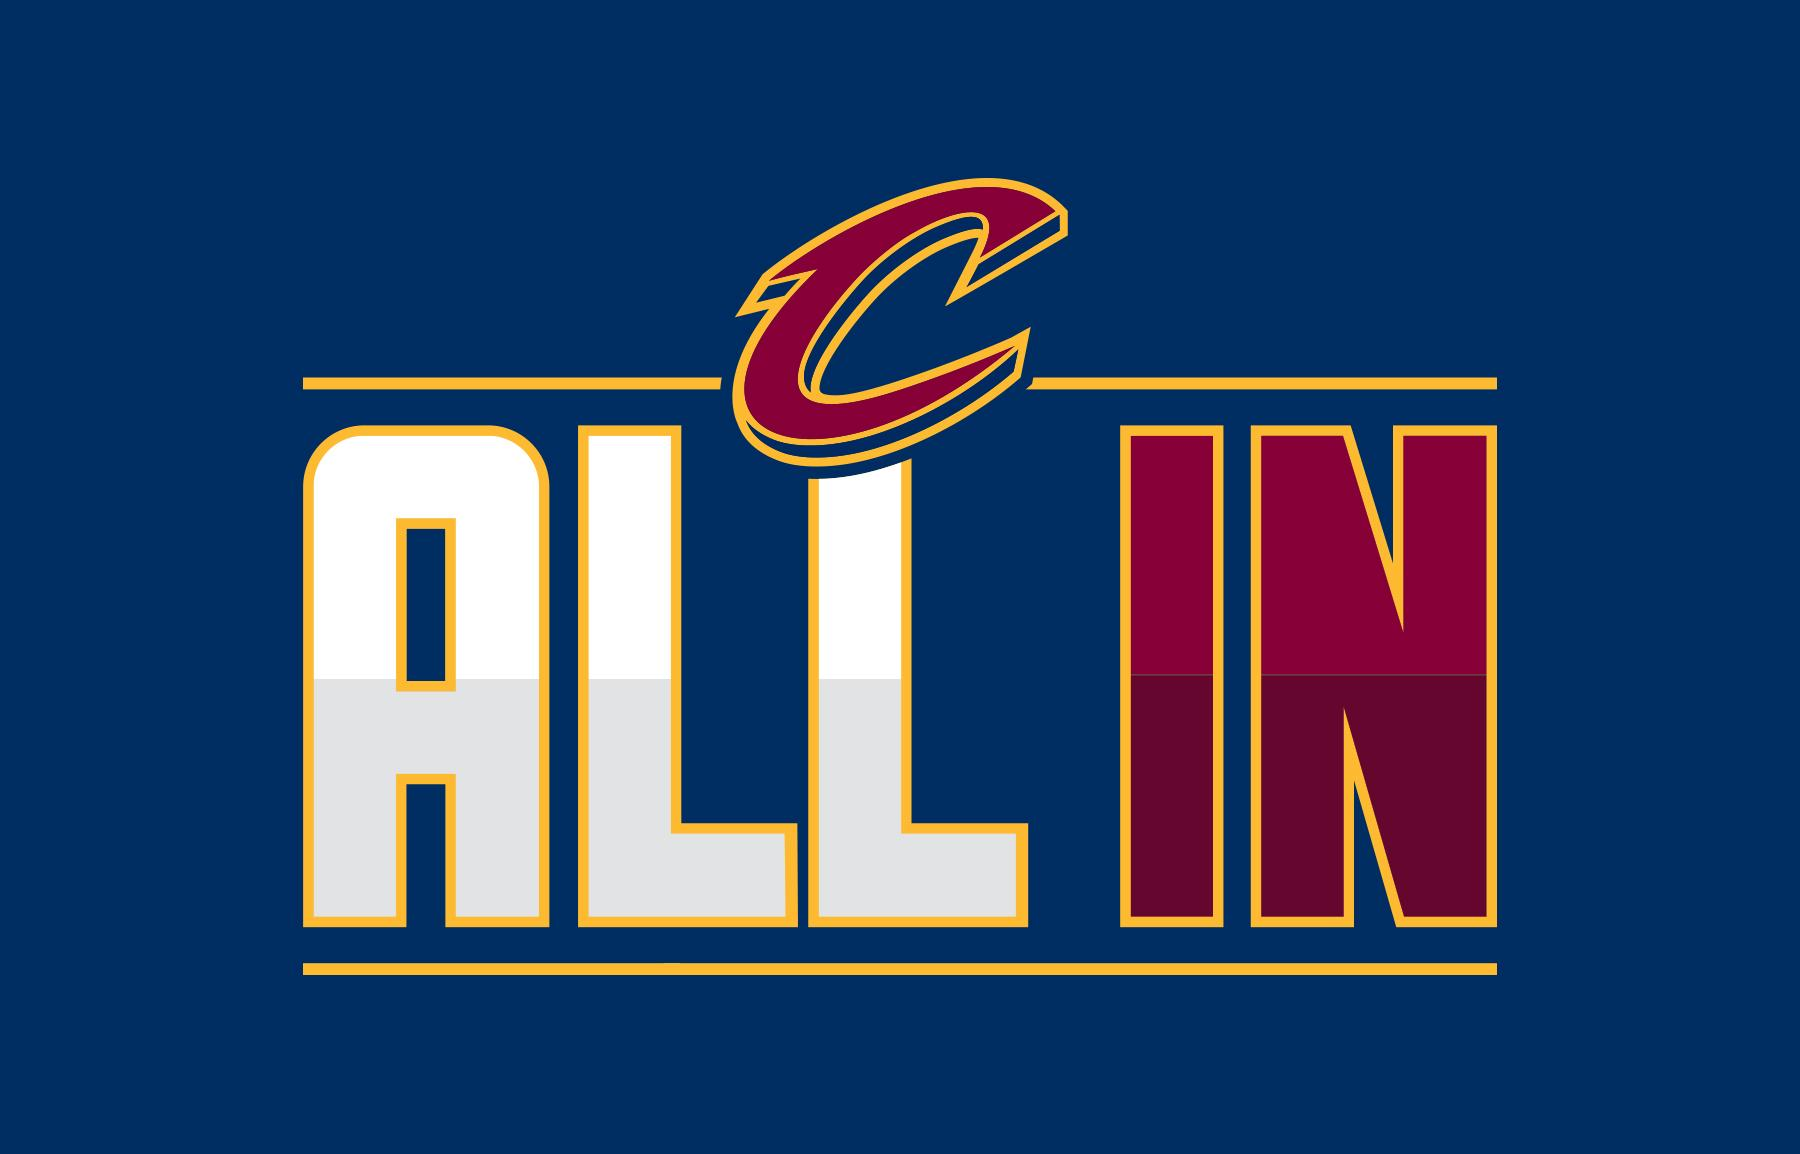 cavs nation on twitter all in will be the playoff catch phrase city and team we are indeed. Black Bedroom Furniture Sets. Home Design Ideas